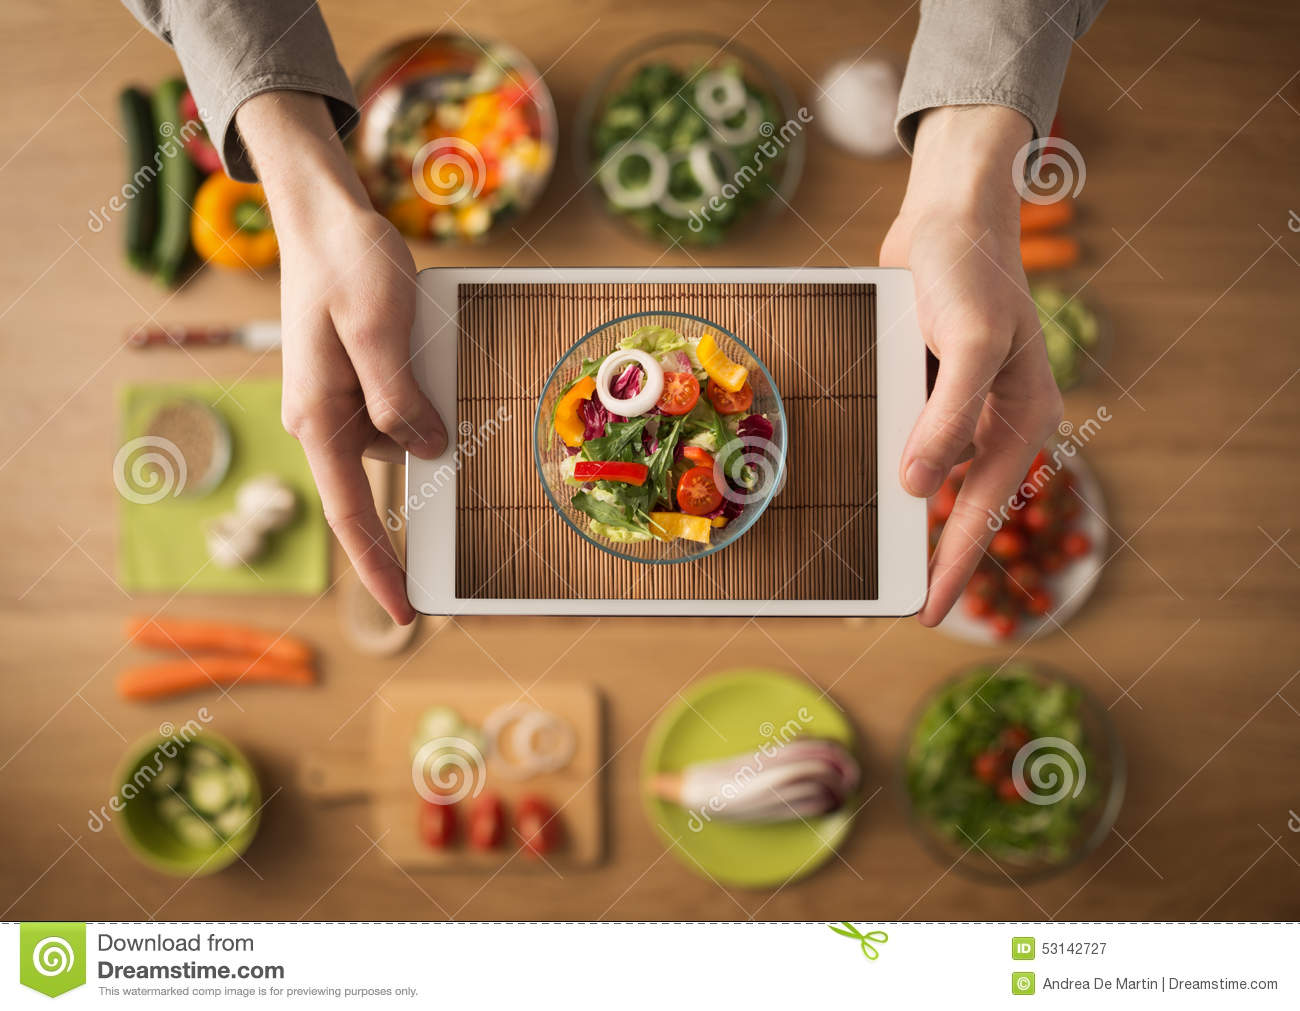 Food and cooking app on digital tablet stock image image of food food and cooking app on digital tablet royalty free stock photo forumfinder Gallery